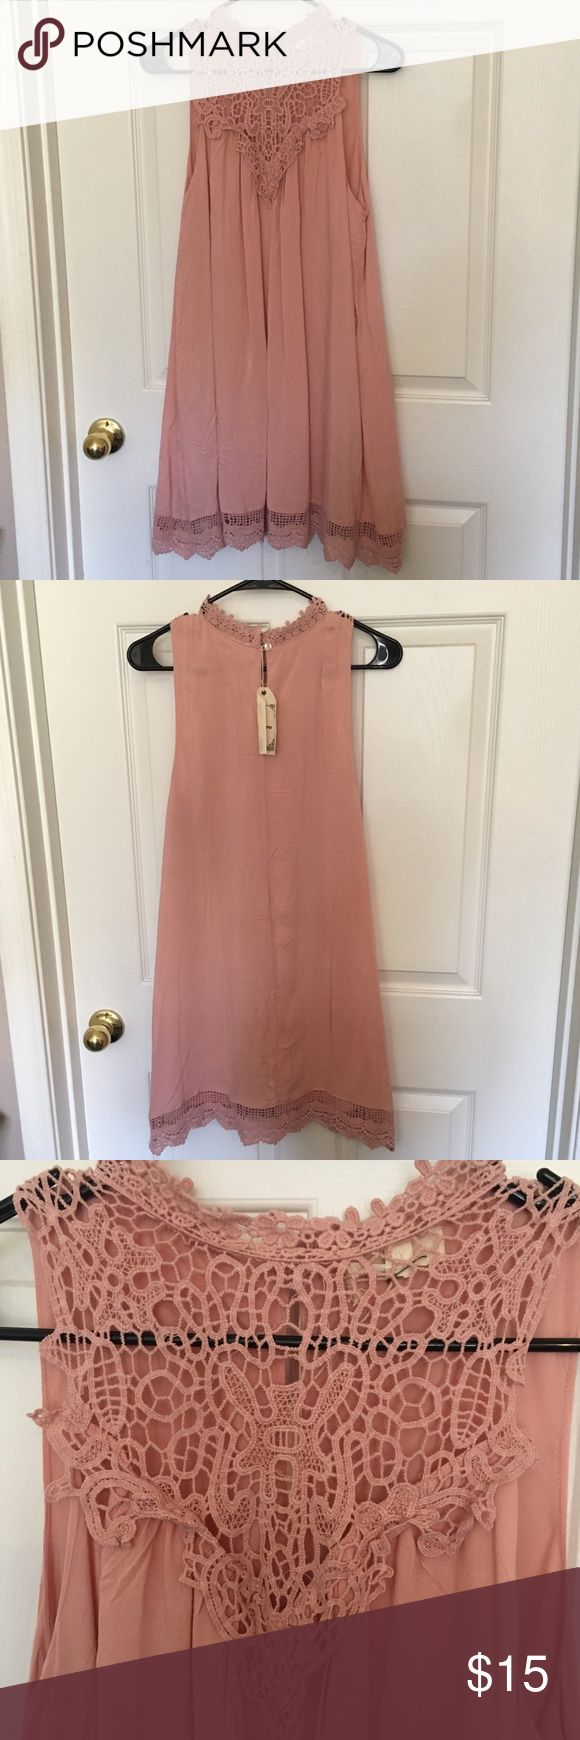 Peach Crocheted Shift Dress Adorable shift dress with crocheted detail! Perfect dress for upcoming wedding season or a great everyday dress! Runs true to size! Dresses Mini